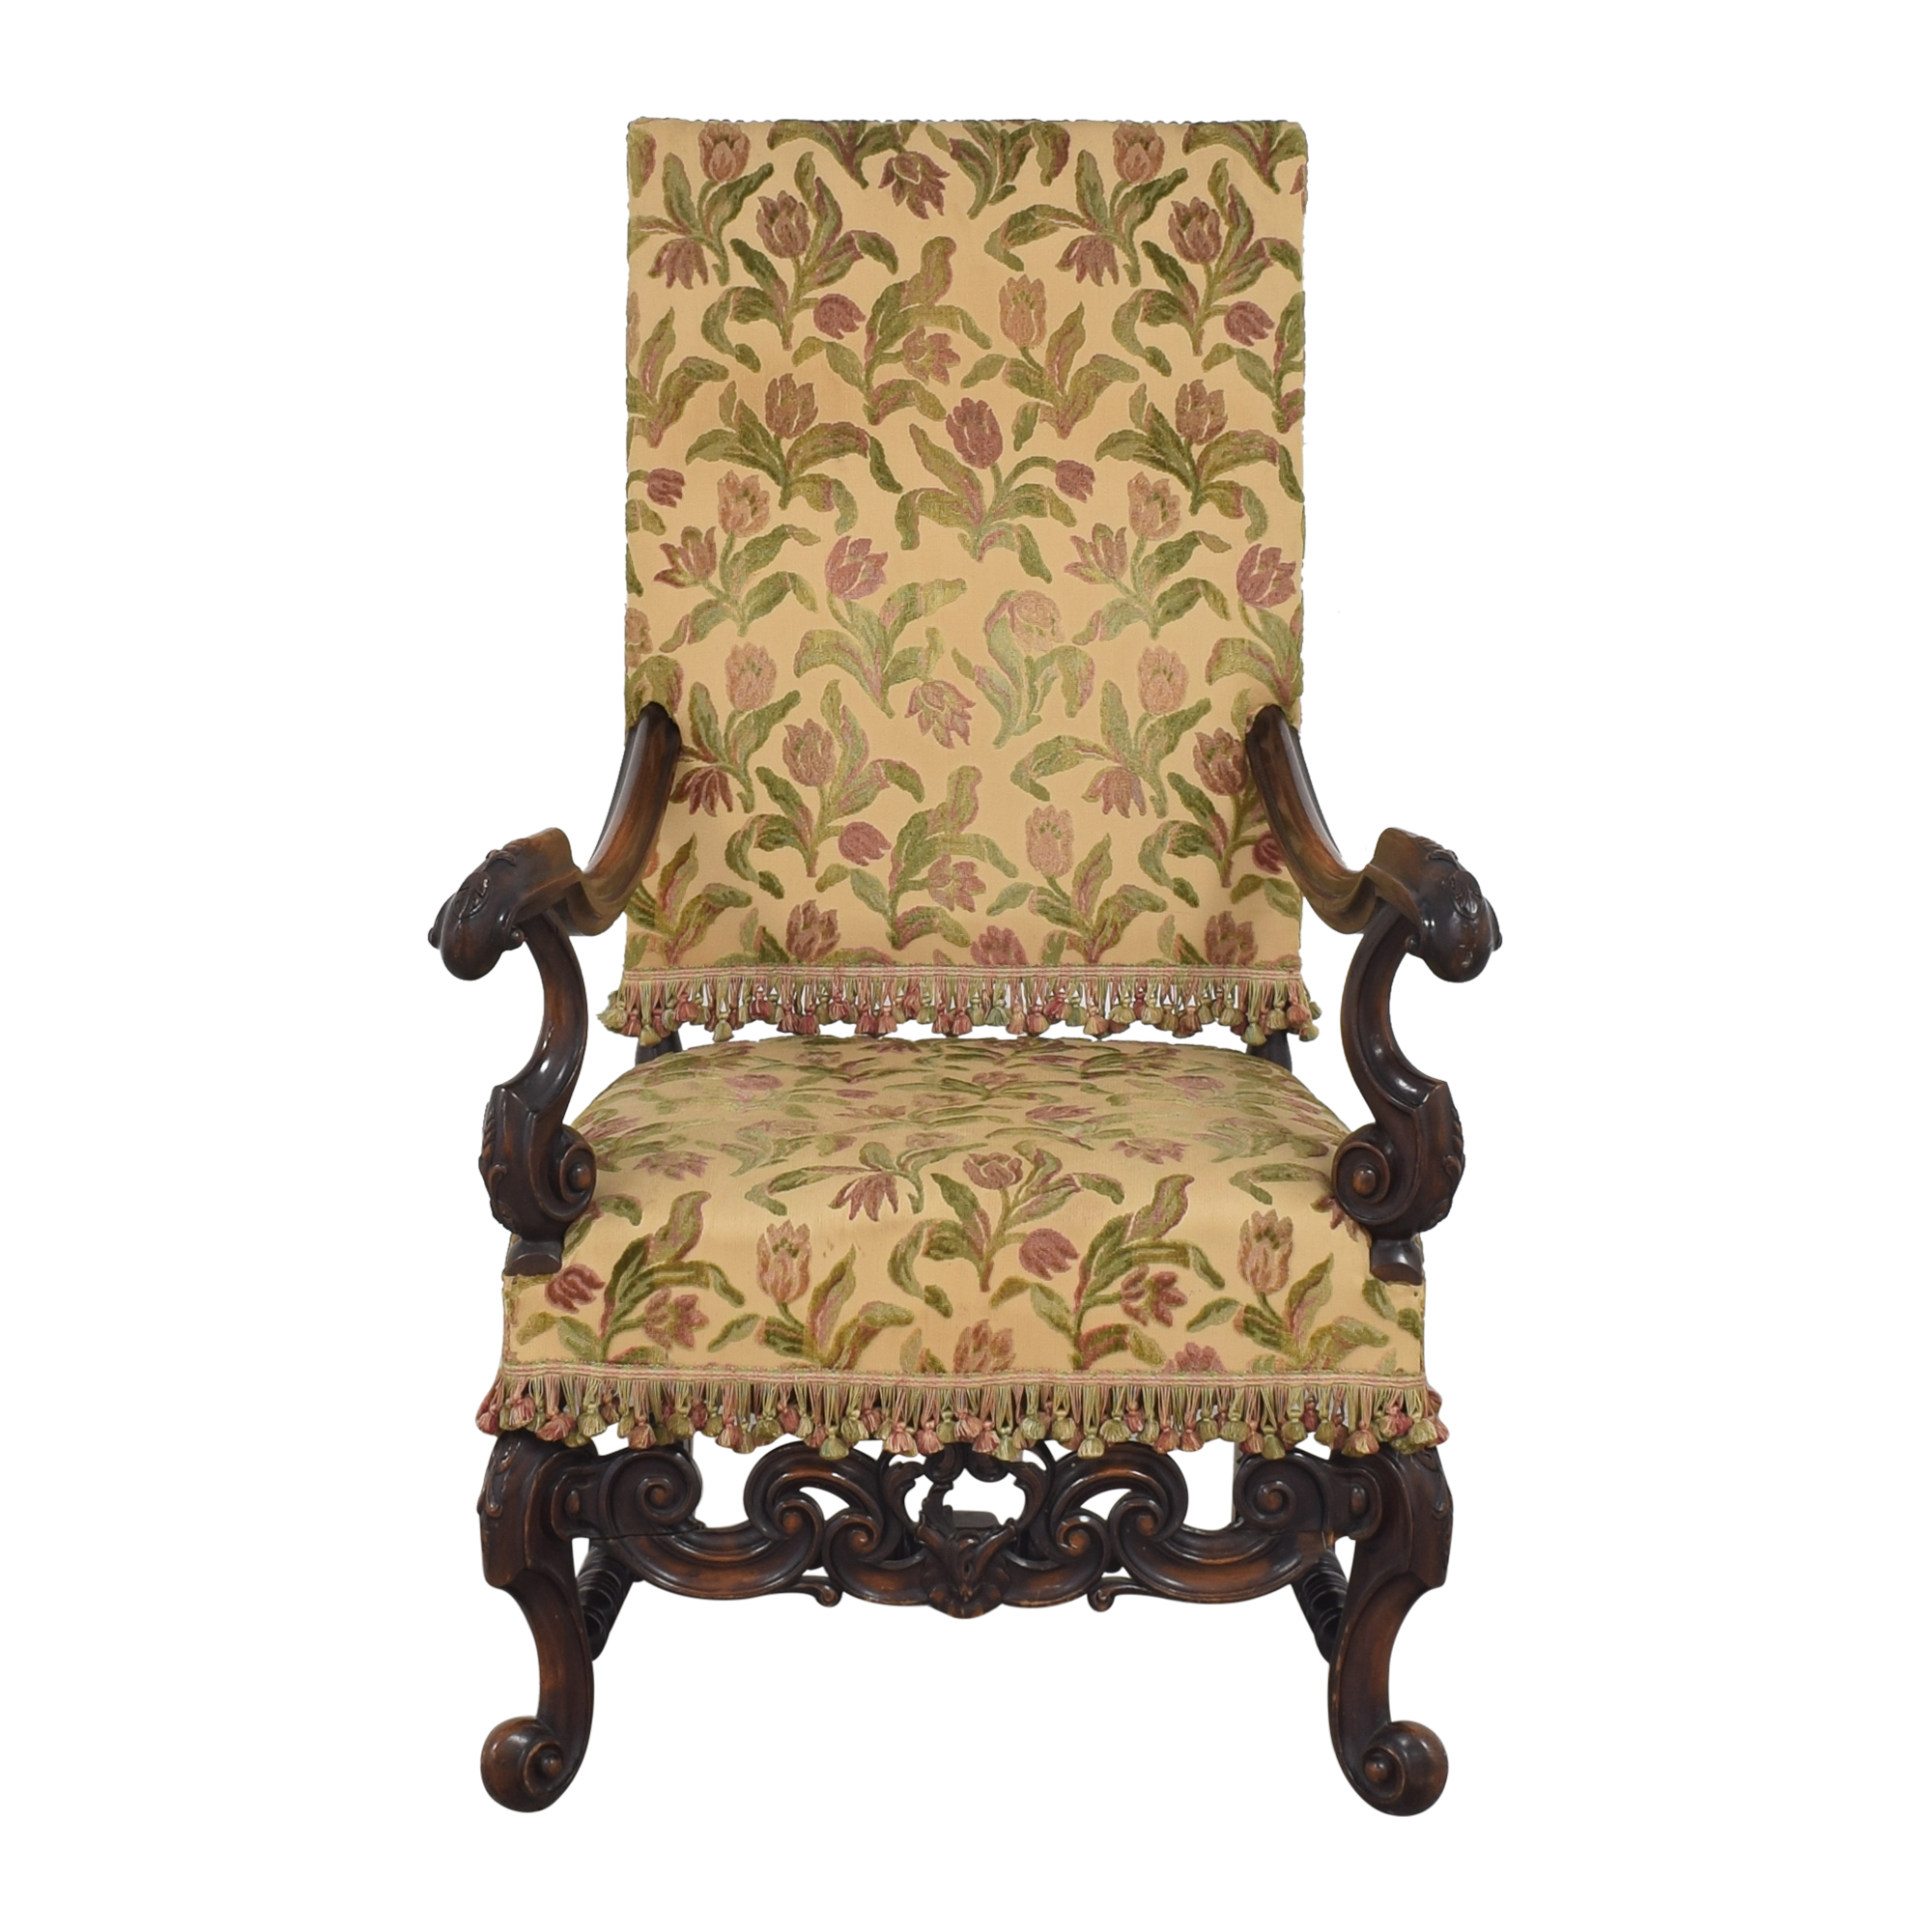 Vintage Floral Accent Chair used